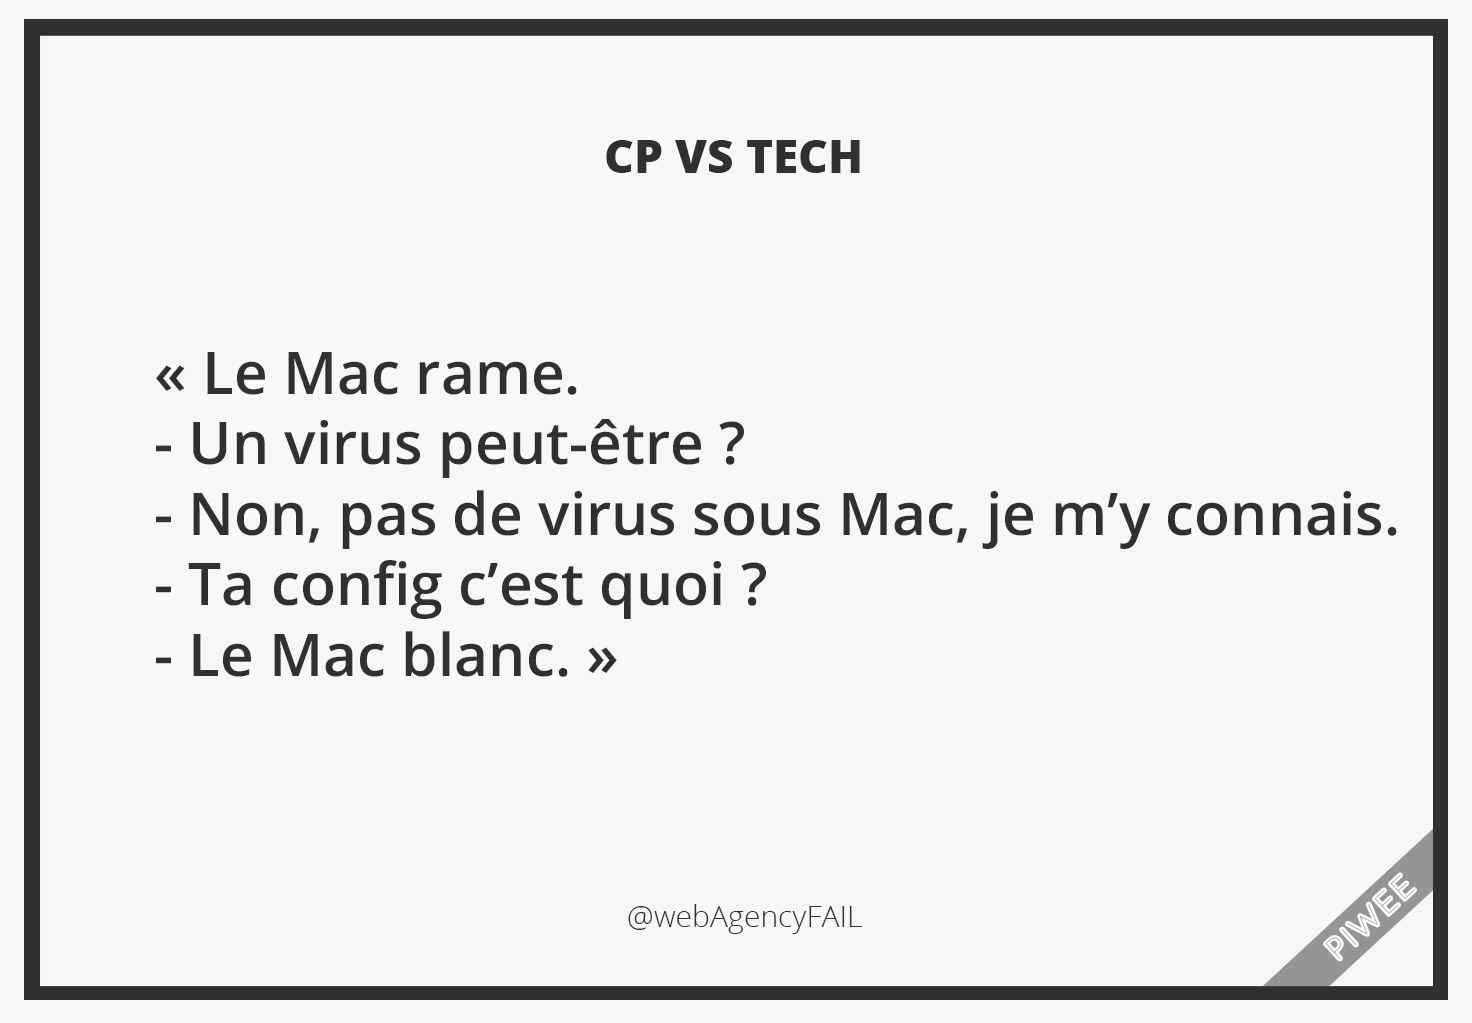 phrases-insolite-client-agence-web-2